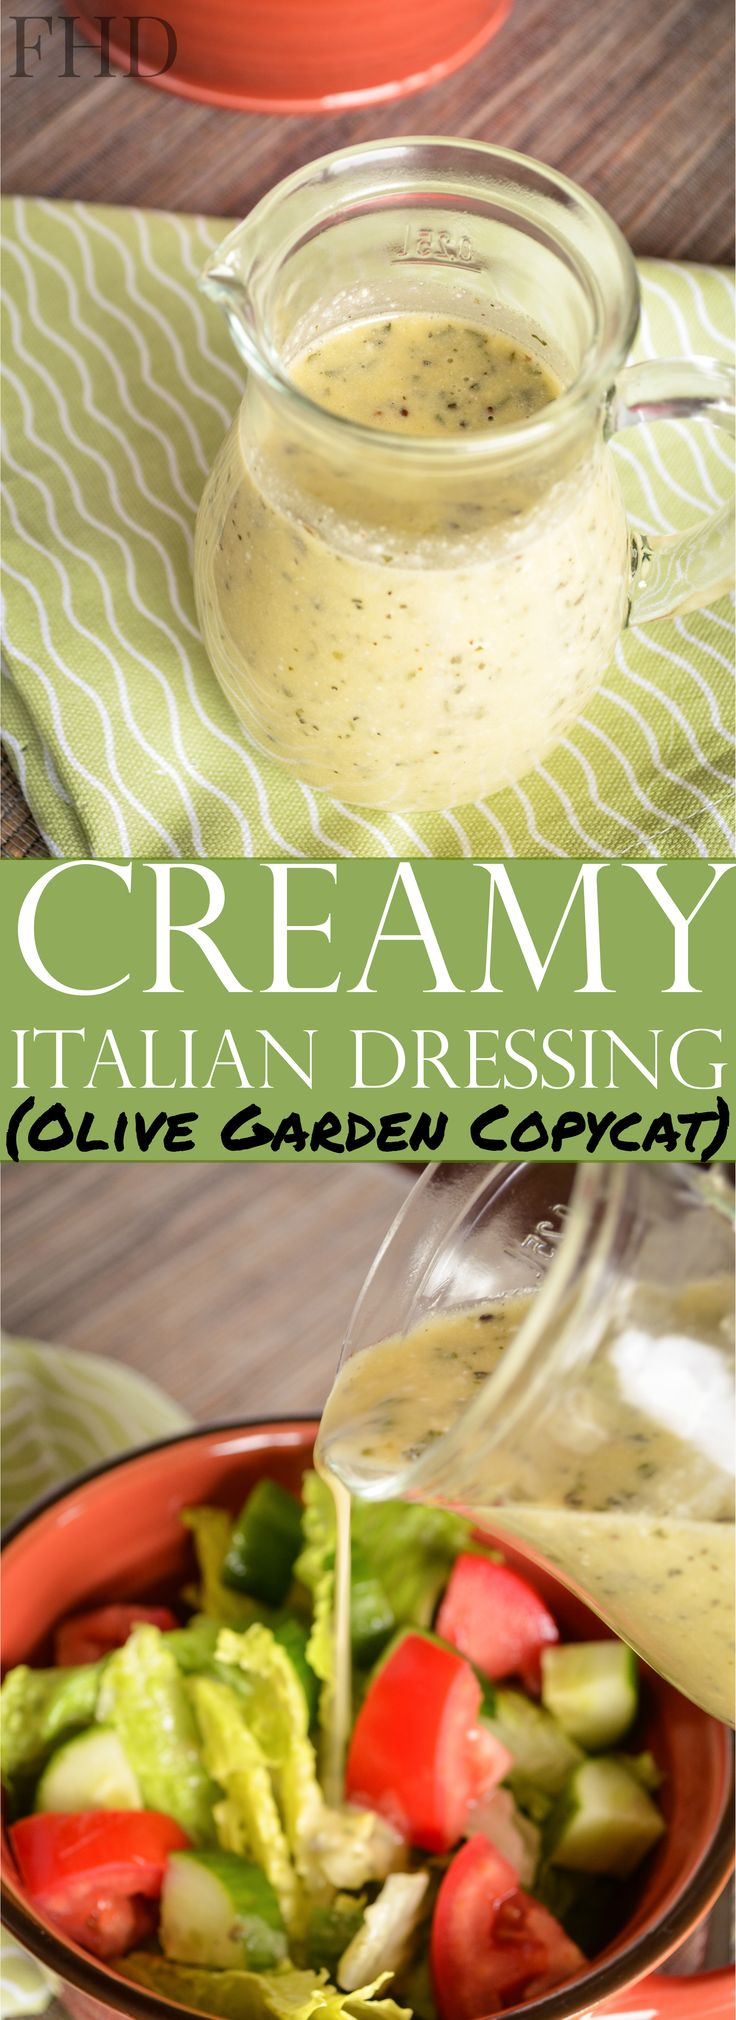 Low Carb Recipes Olive Garden Dressing And Italian Dressing On Pinterest